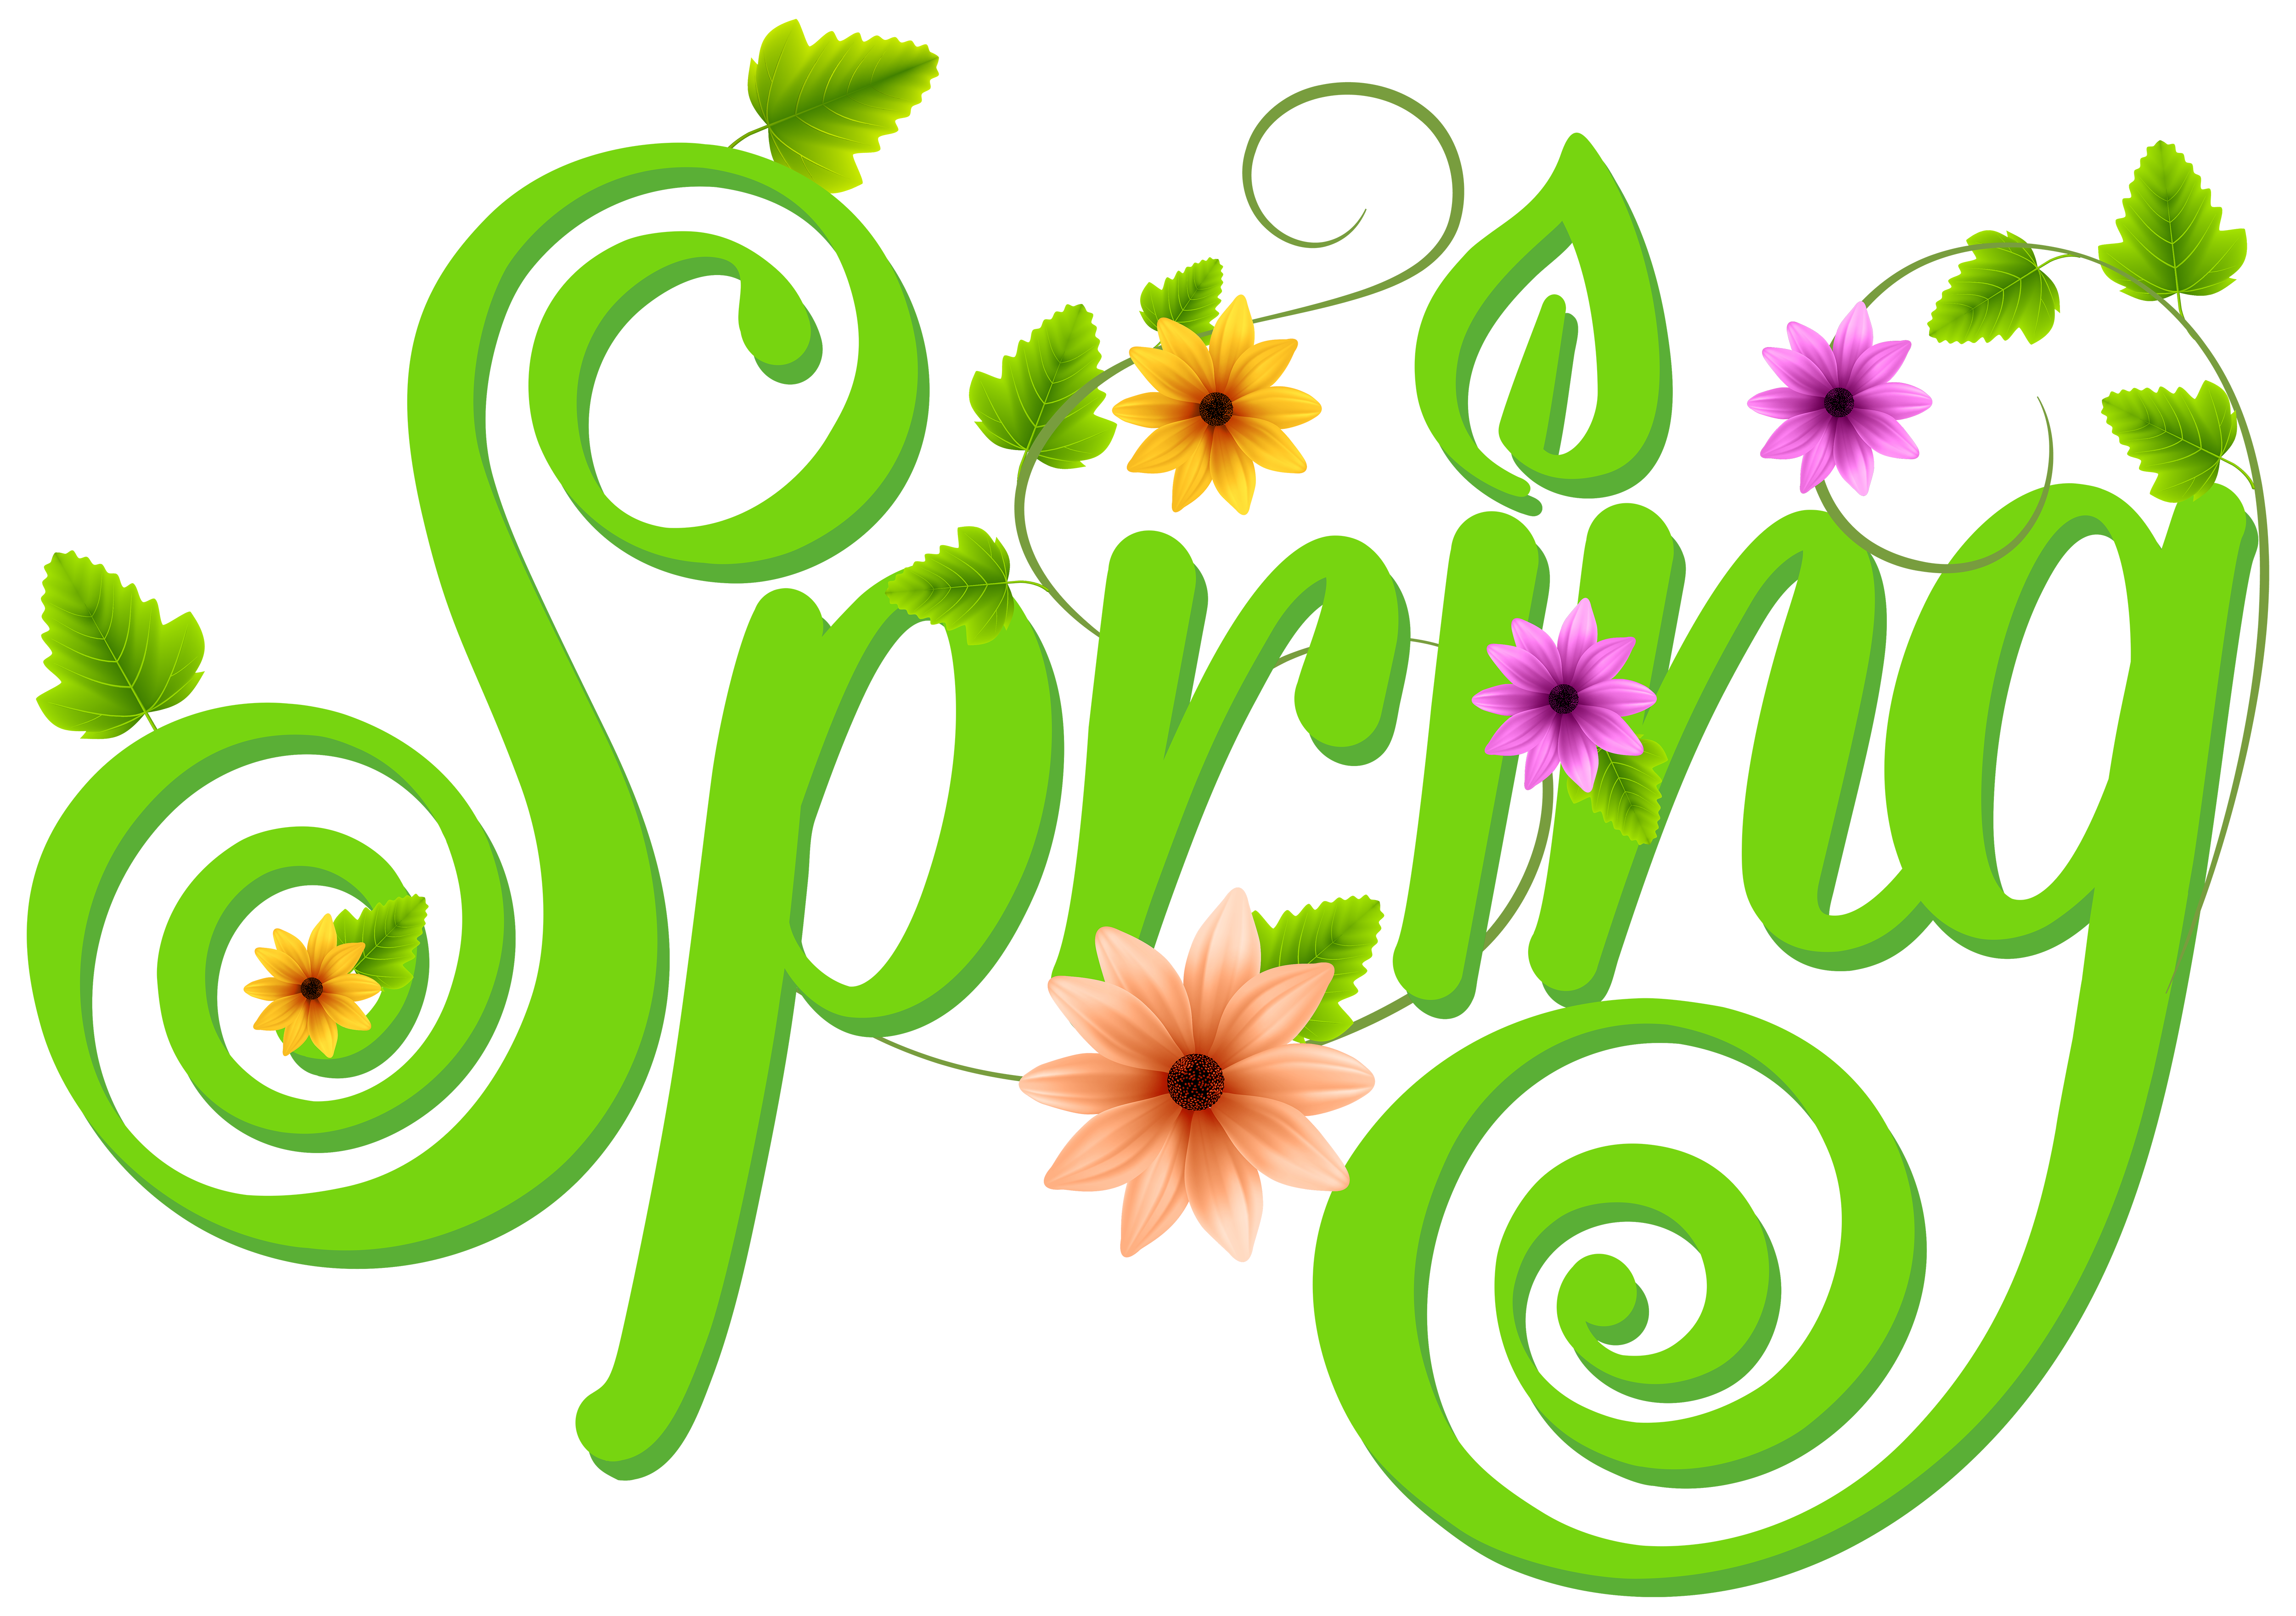 Decoration png clip art. Clipart school spring